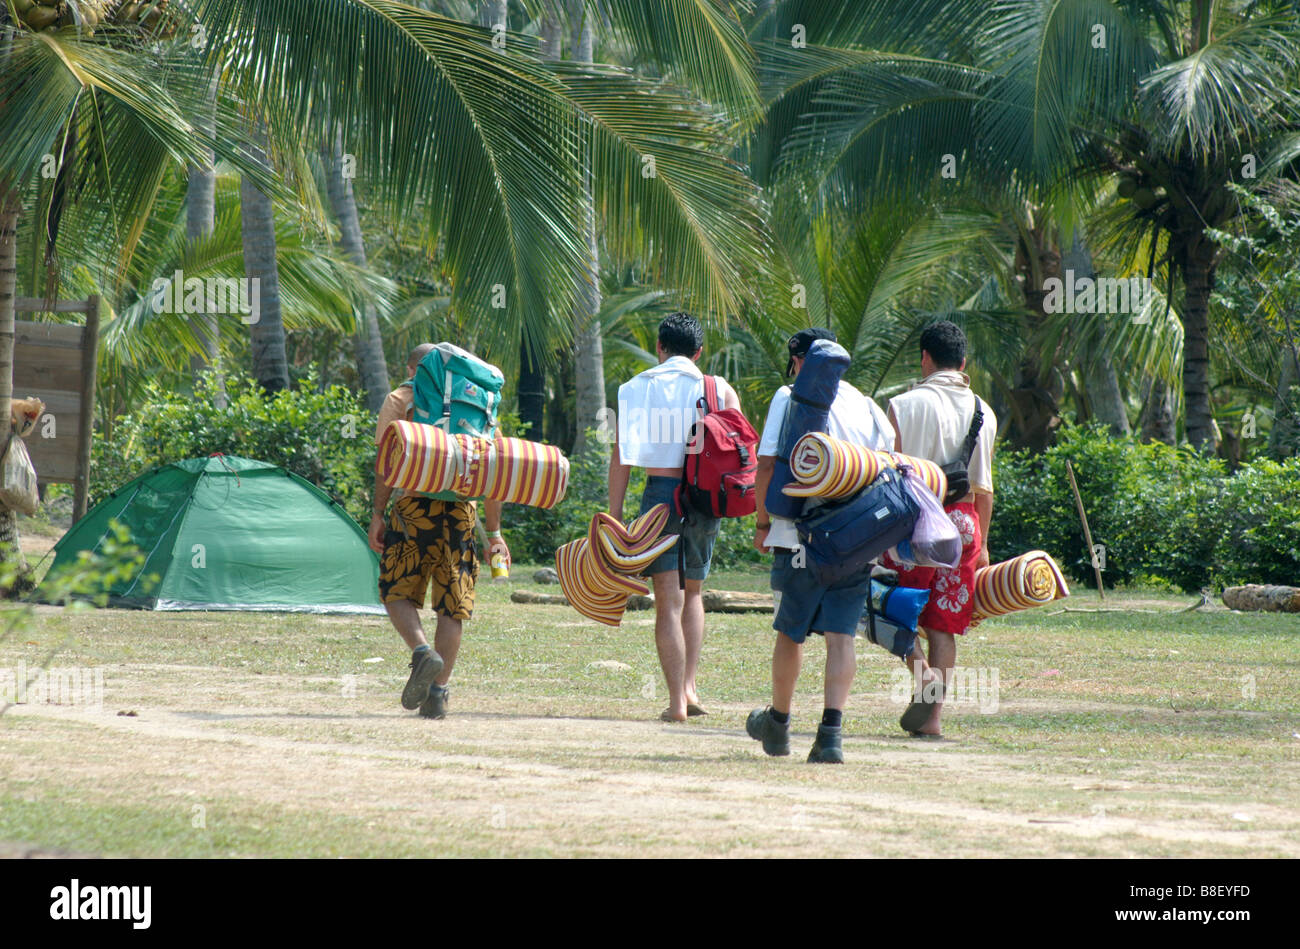 Back Packers In The Cabo San Juan De Guia Campground In Tayrona Park Stock Photo Alamy